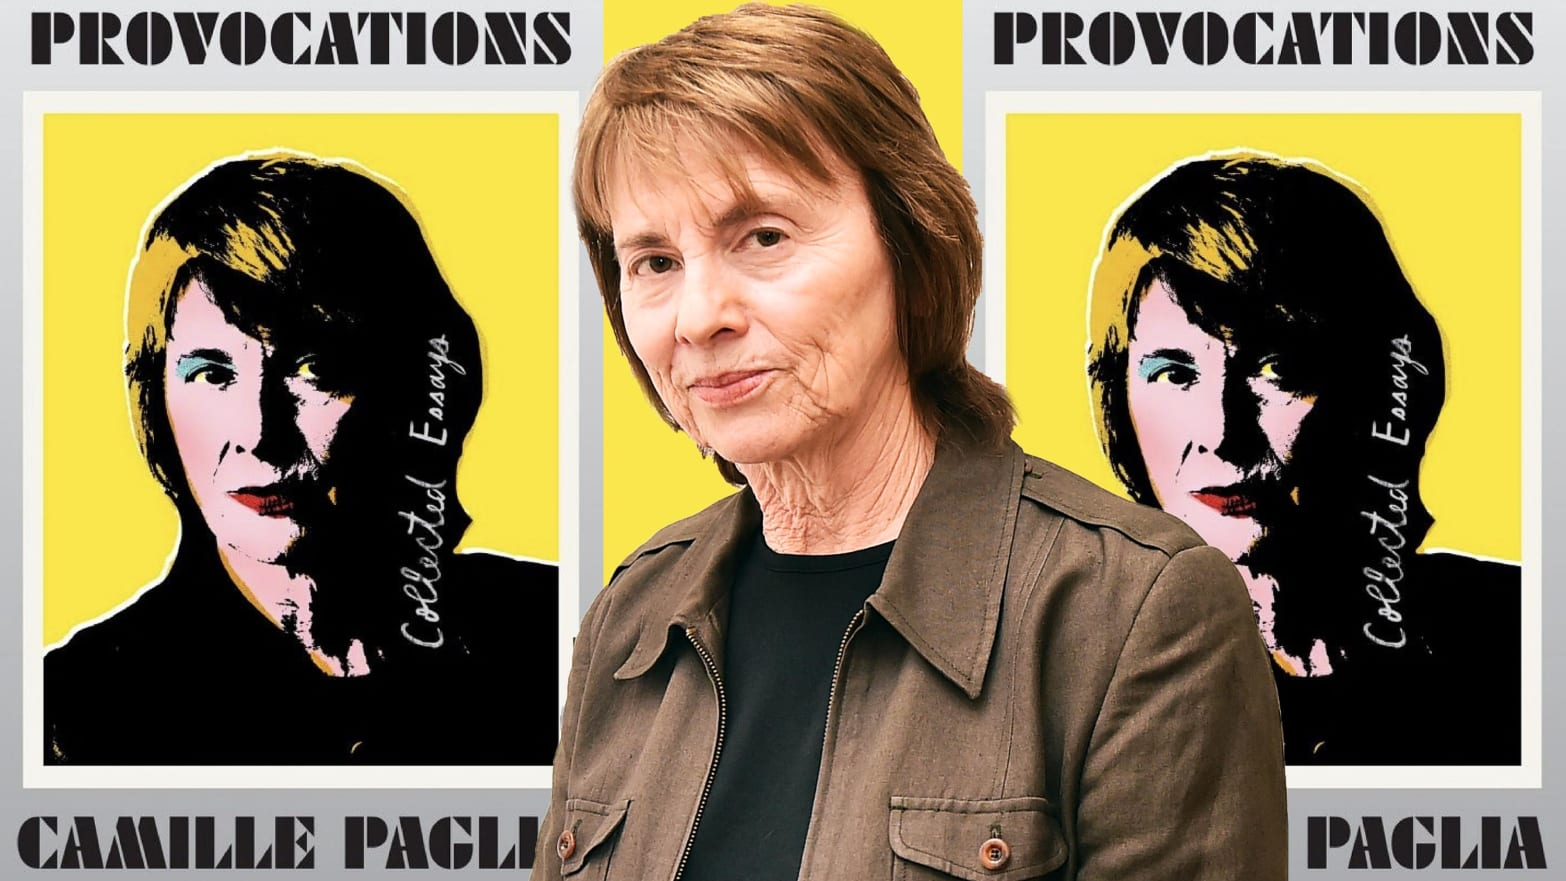 Camille Paglia Wants to Provoke, but Mostly She Just Irks Us